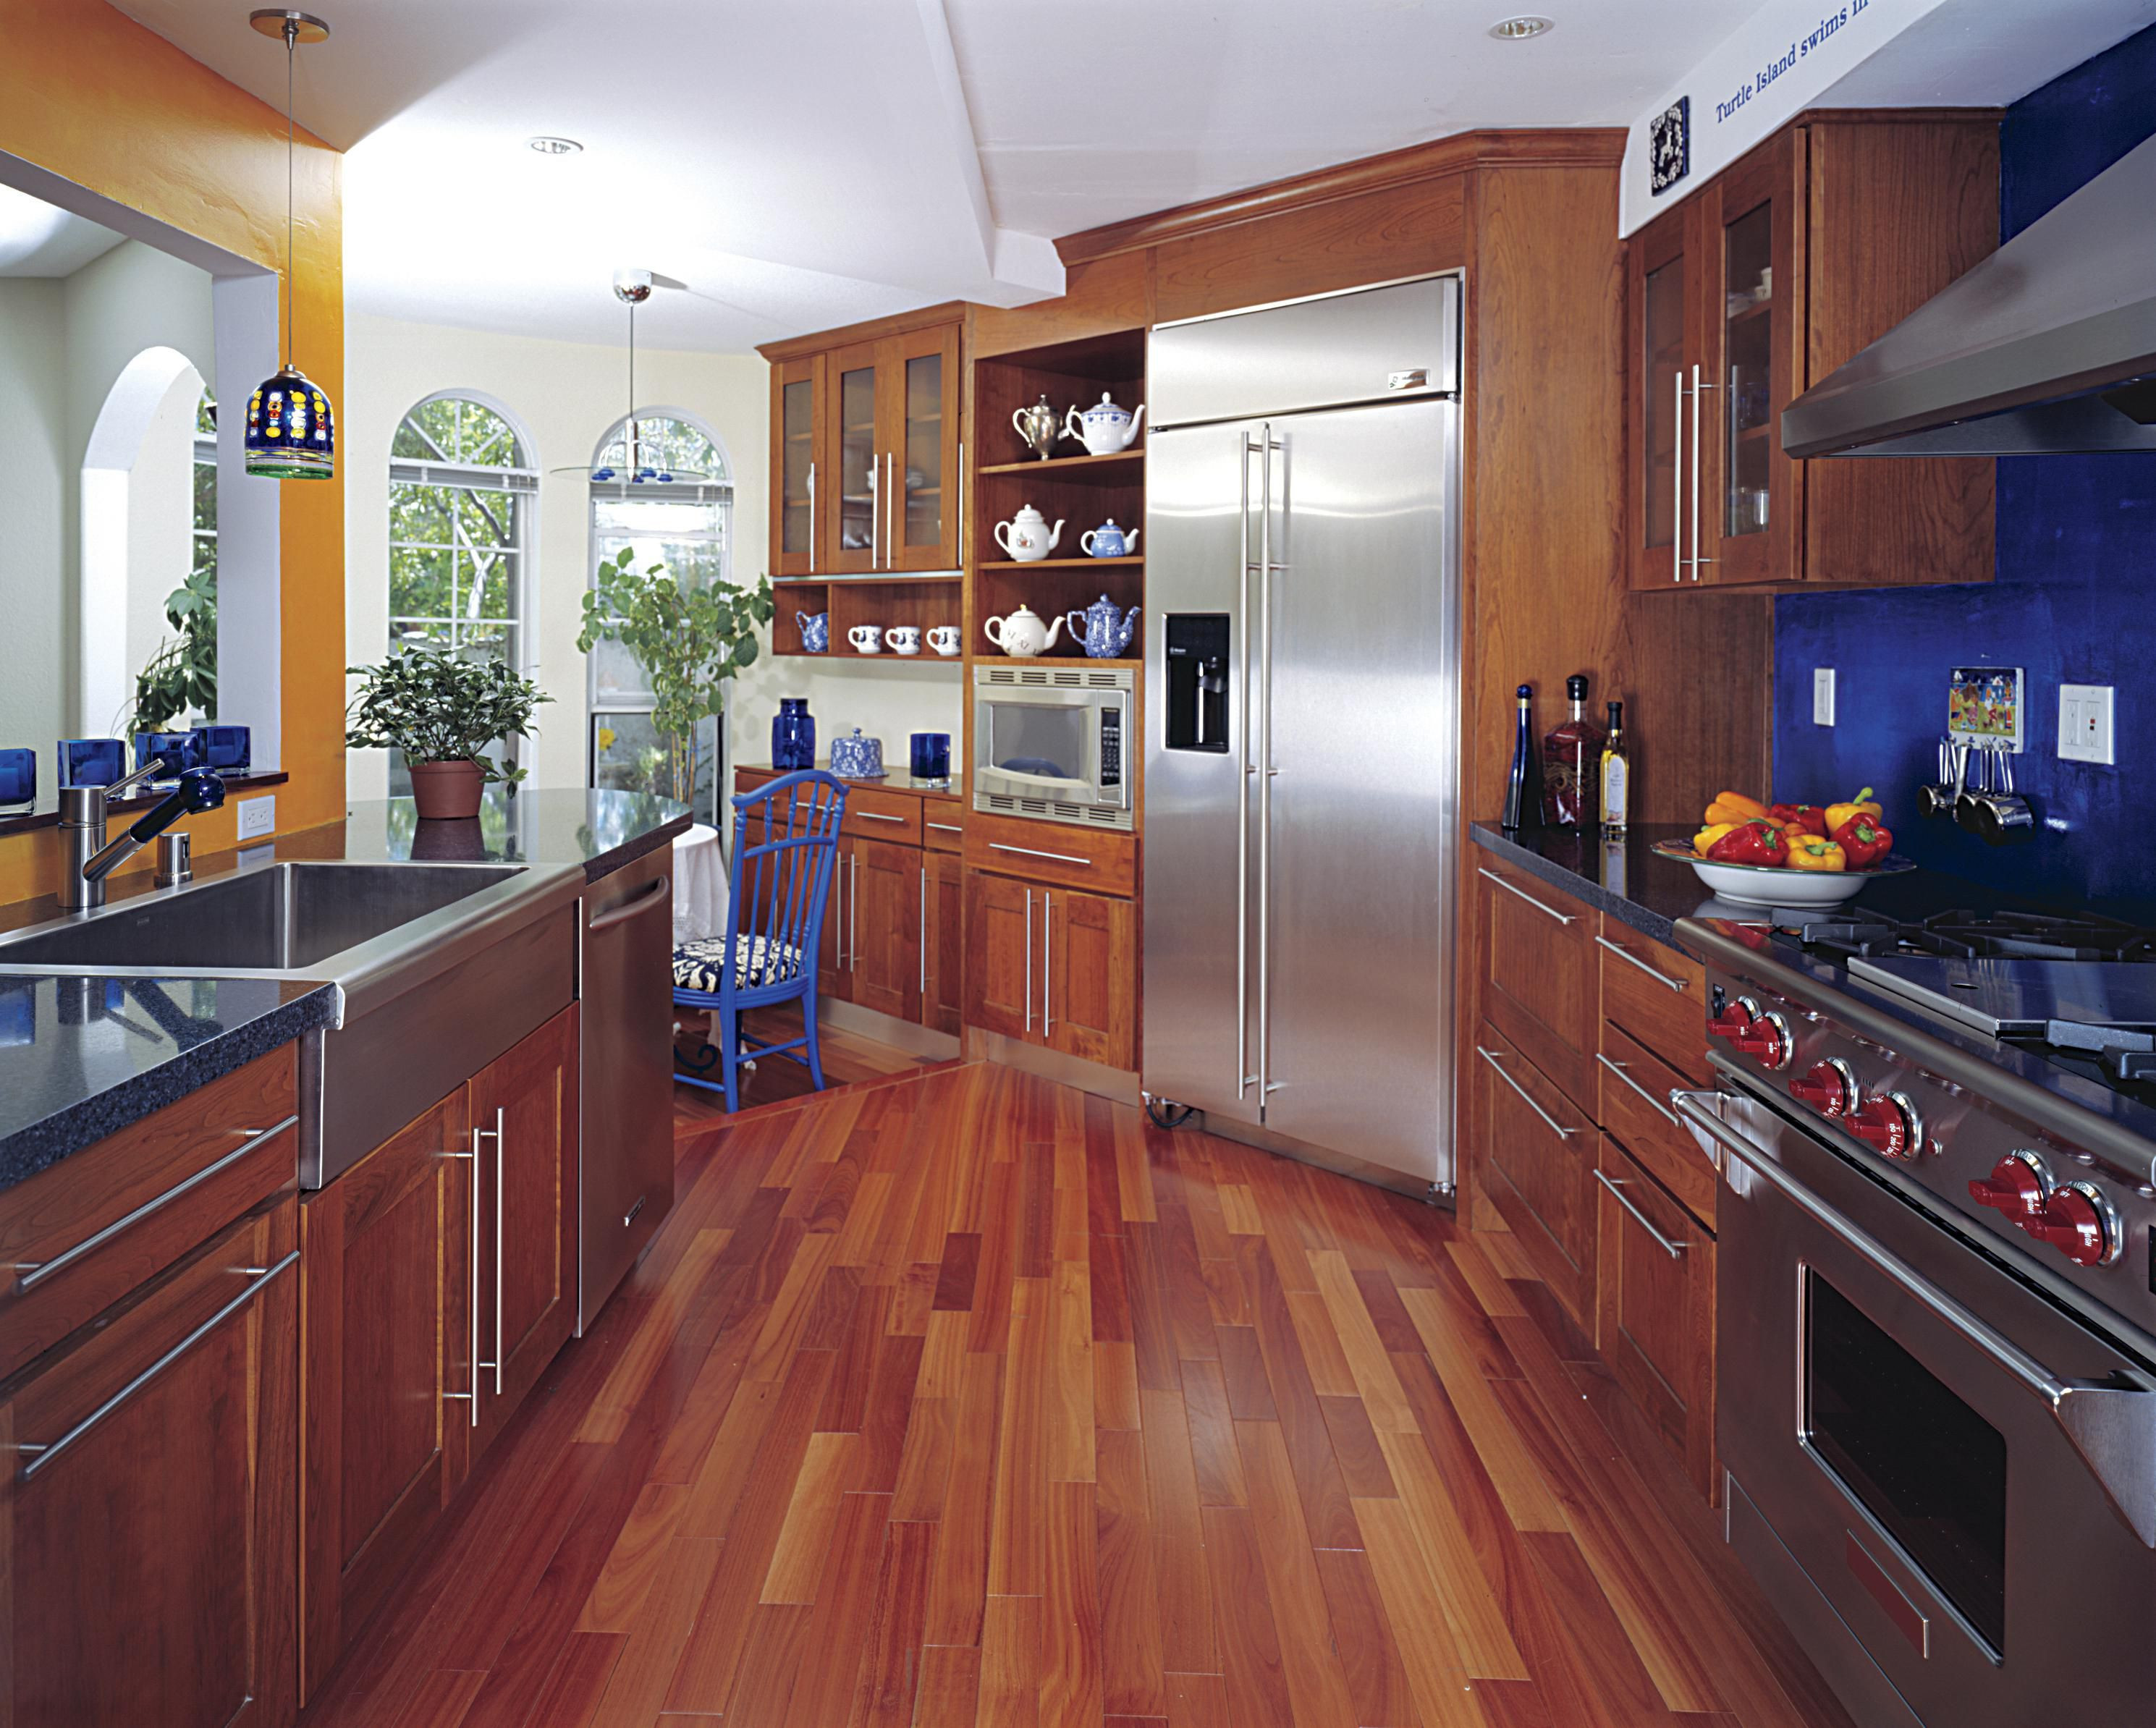 1 1 2 inch white oak hardwood flooring of hardwood floor in a kitchen is this allowed within 186828472 56a49f3a5f9b58b7d0d7e142